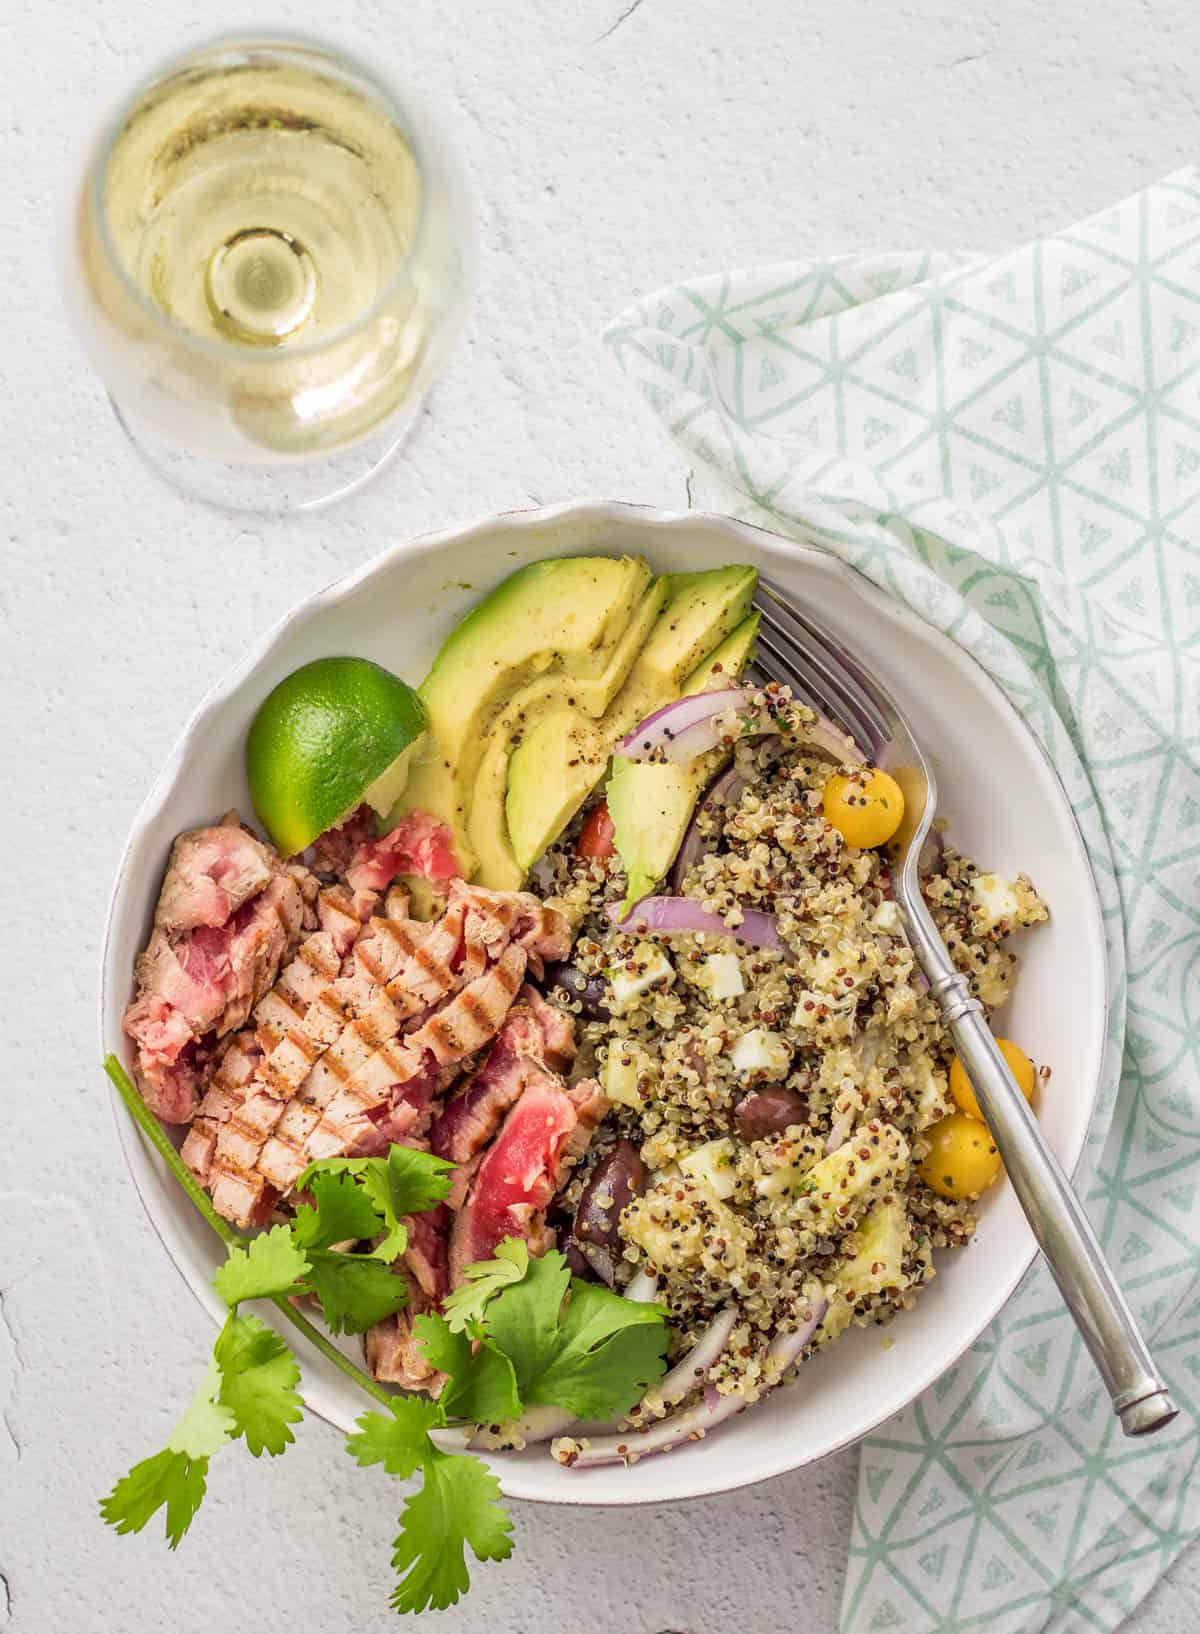 The Peruvian quinoa salad served with seared ahi tuna and sliced avocado in a white ceramic bowl and a glass of wine.